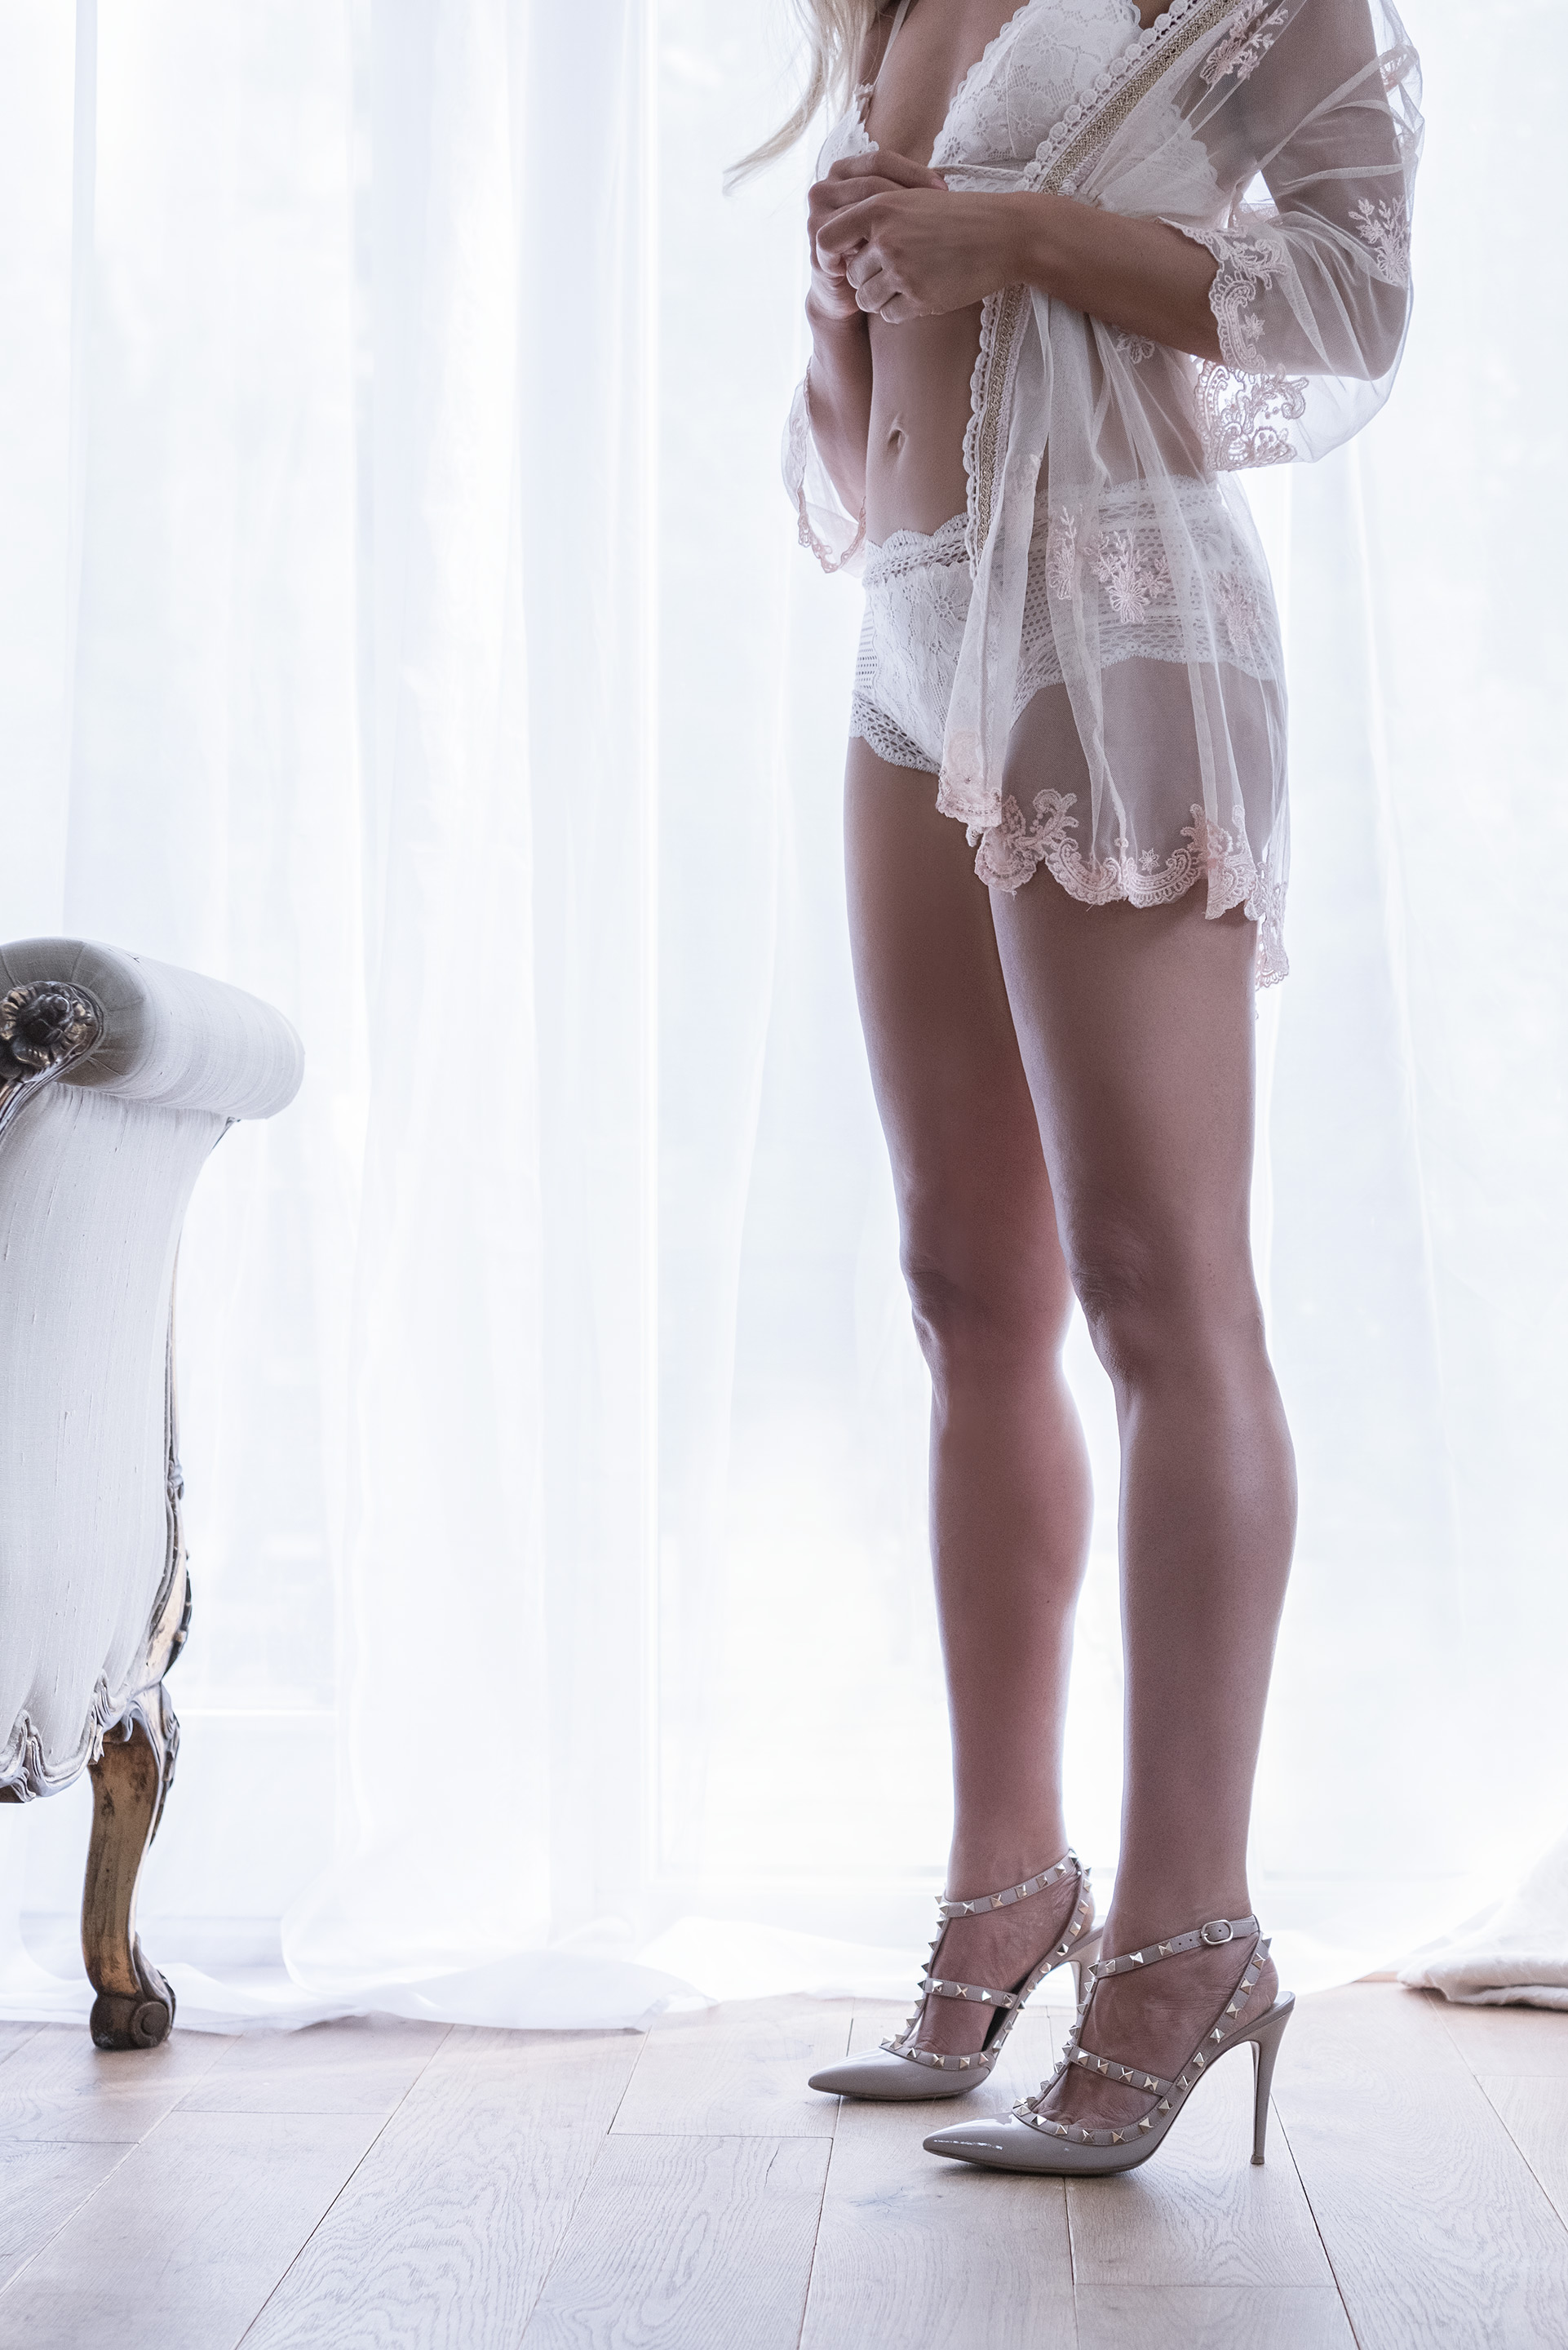 Bridal Boudoir Photography showcasing designer lace lingerie